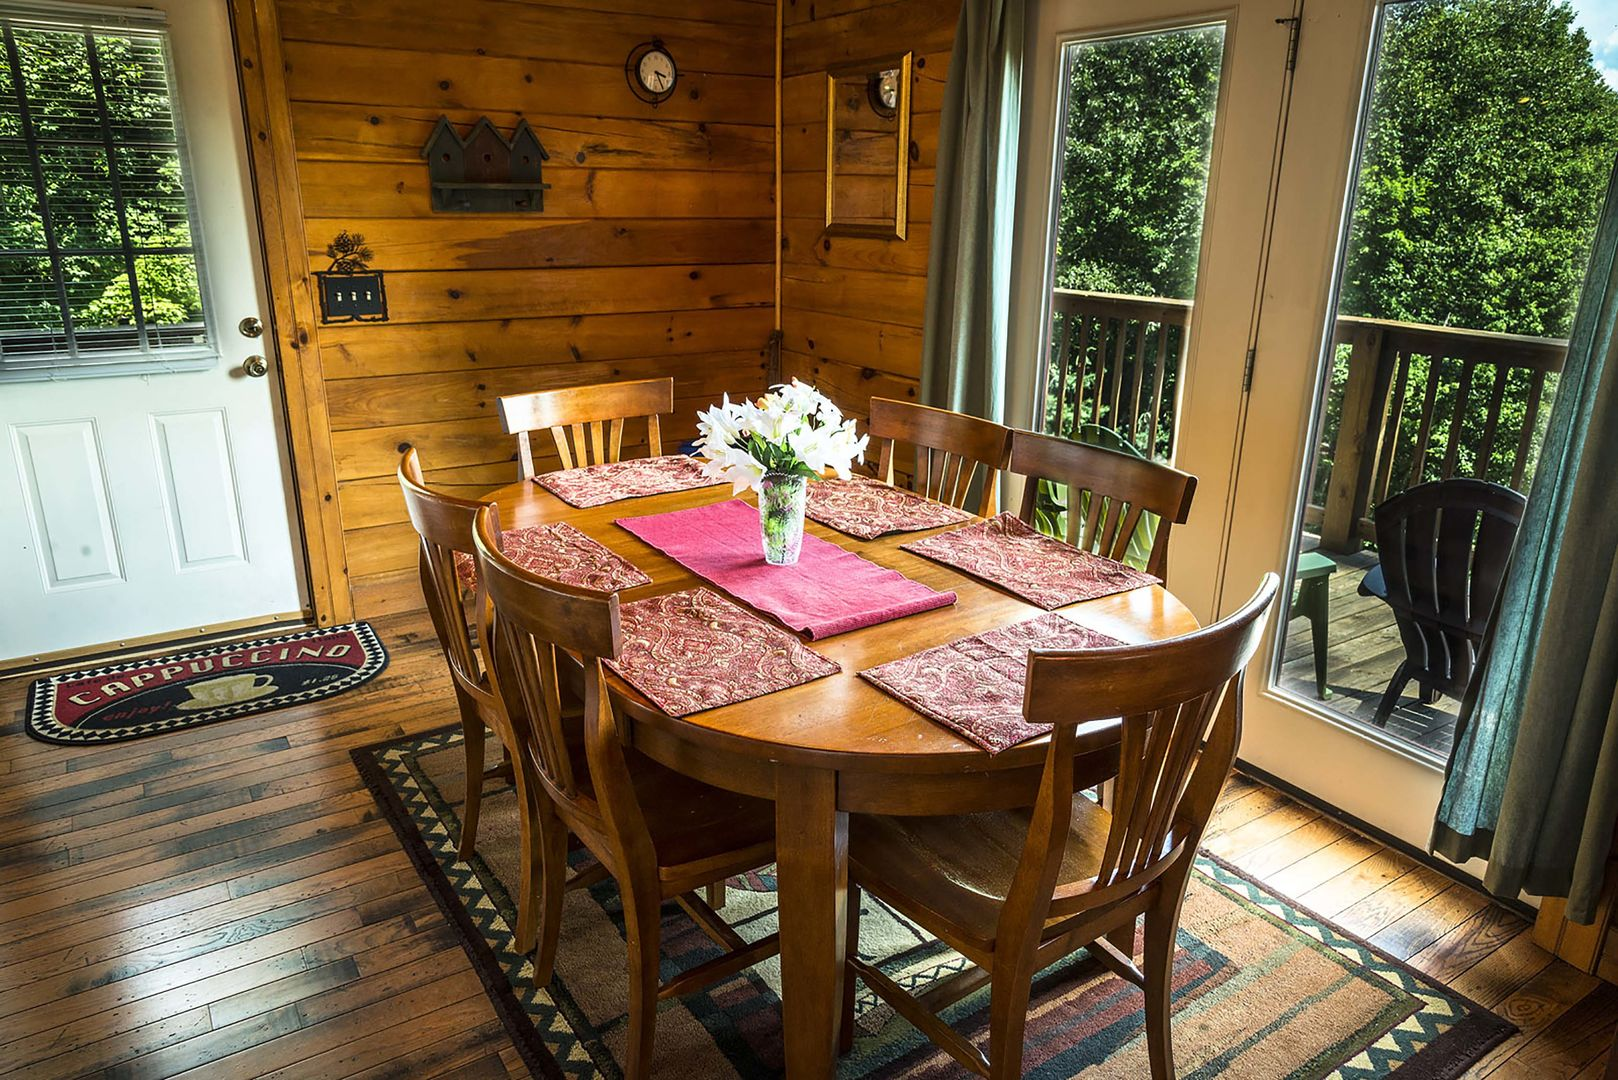 Dining room table for 6 people